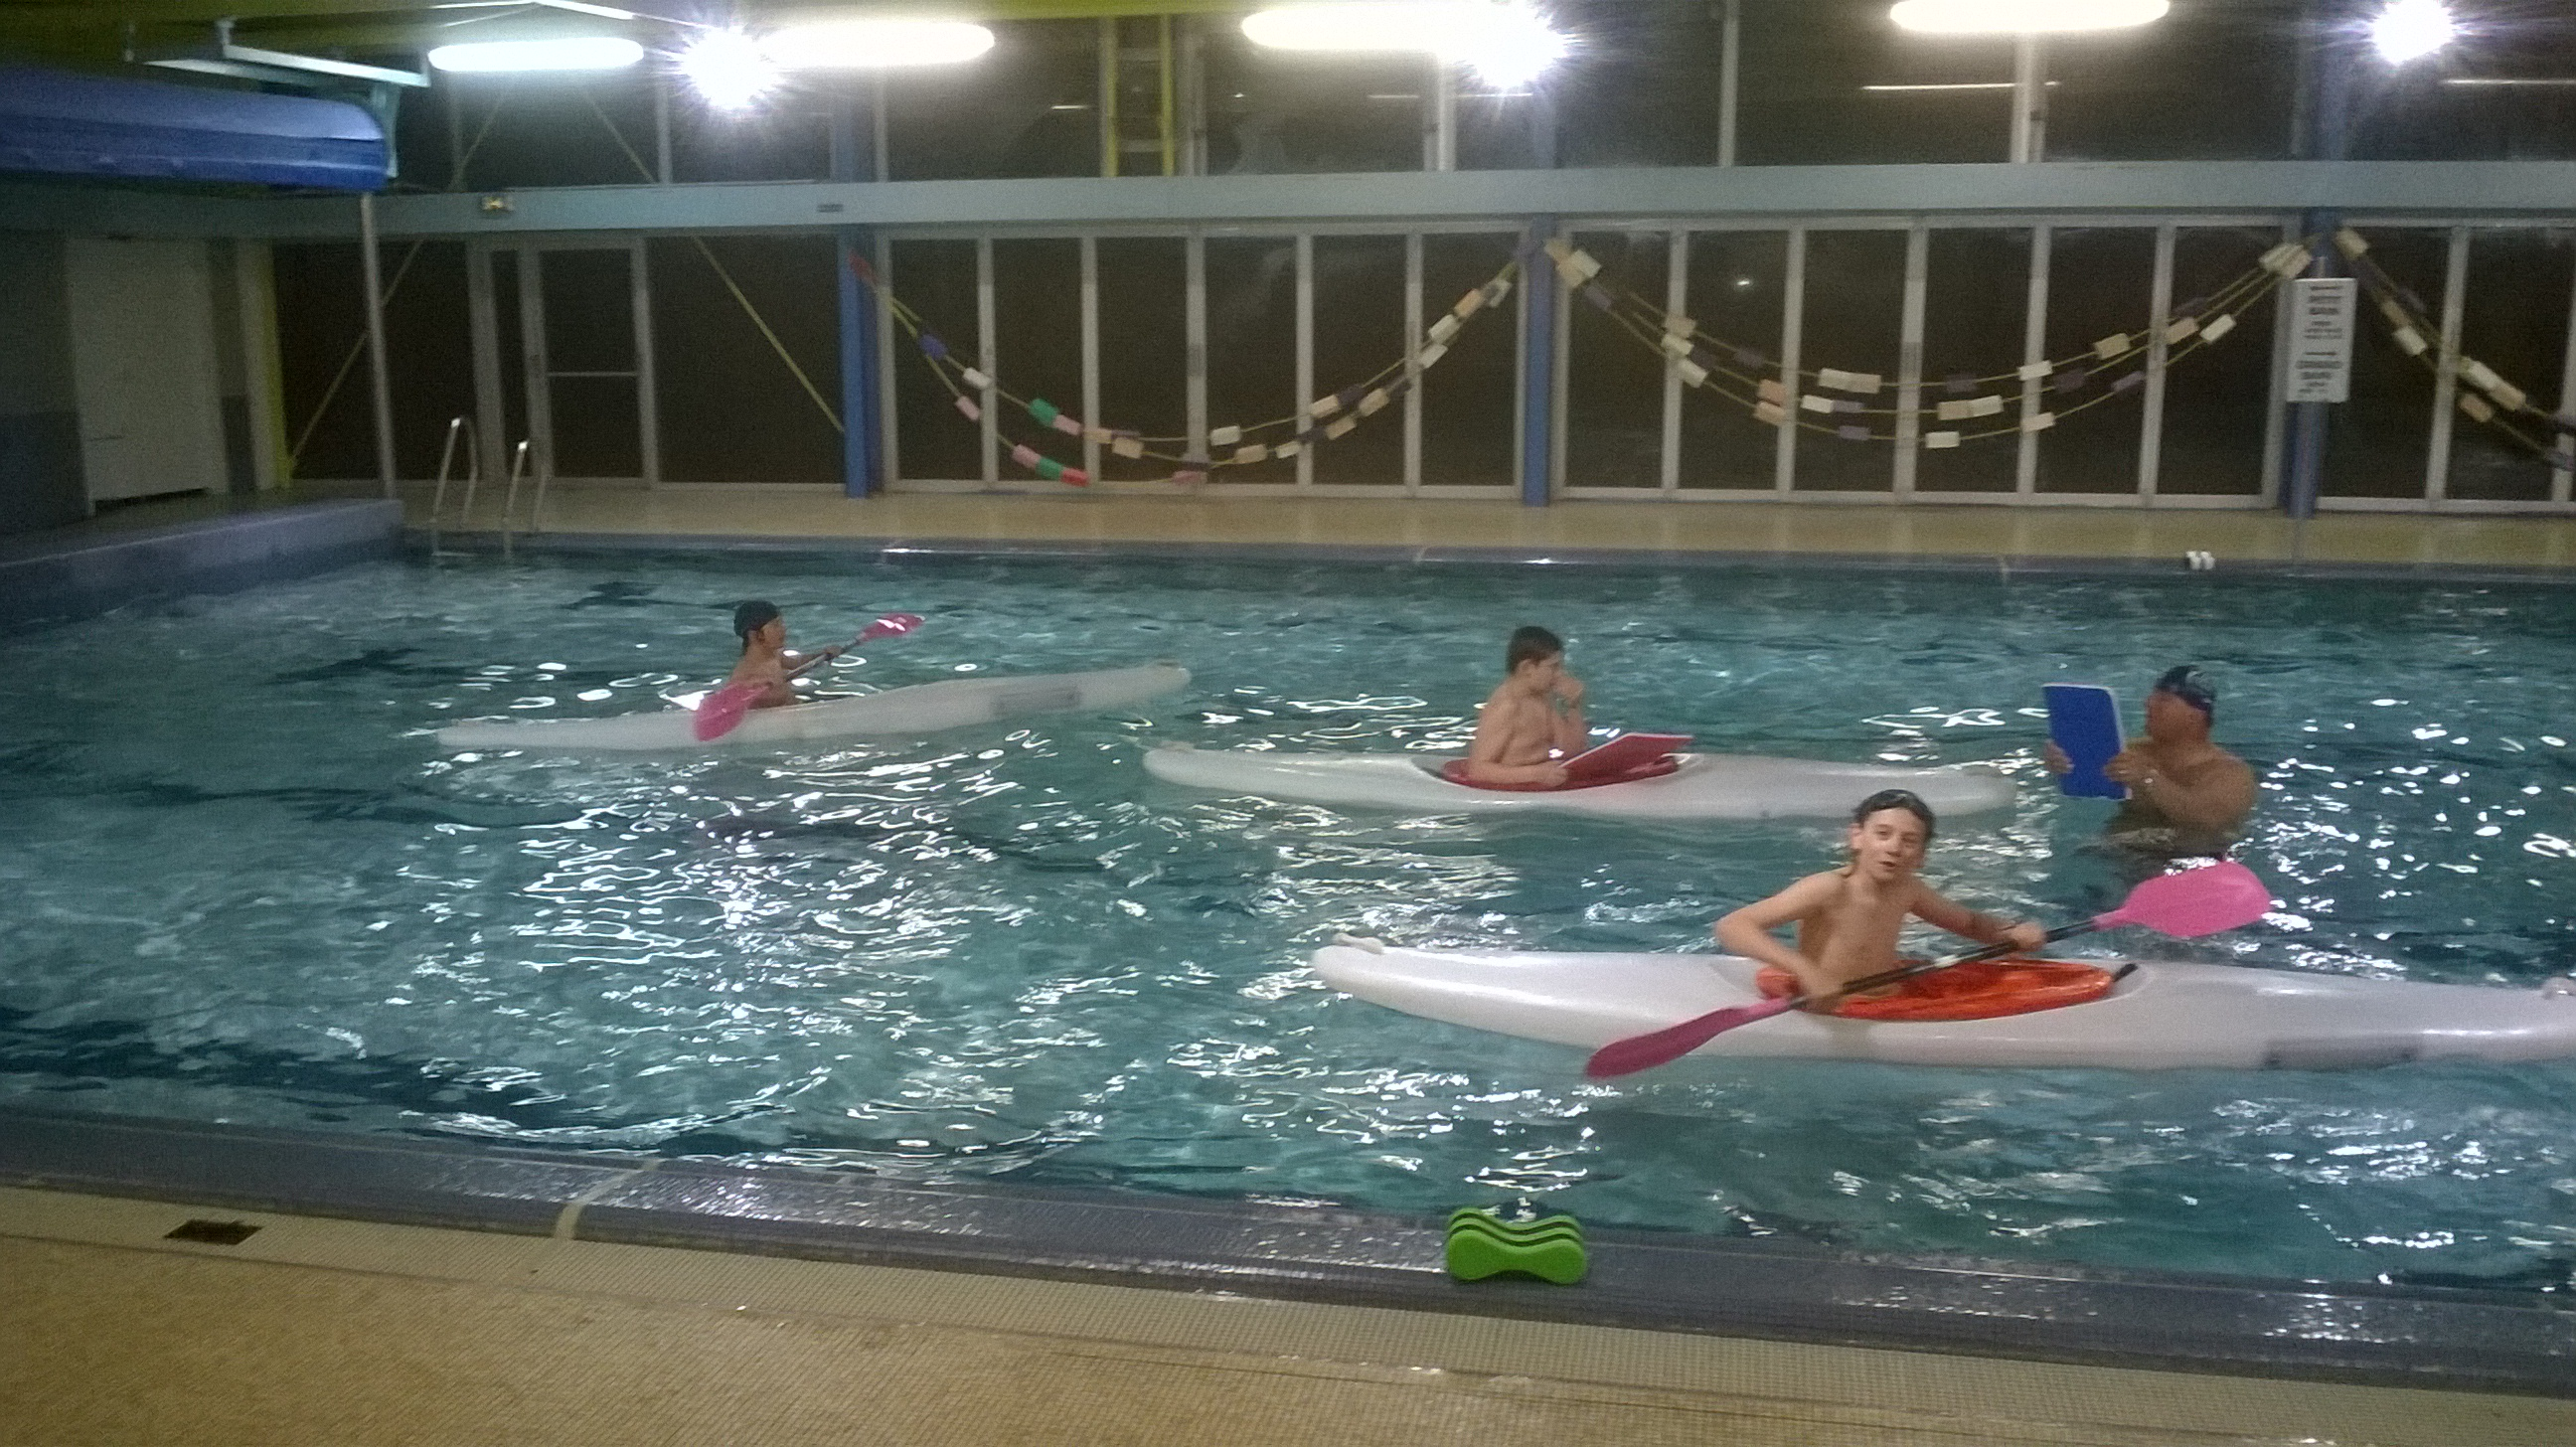 Activit s du club cano kayak de thouars Piscine thouars